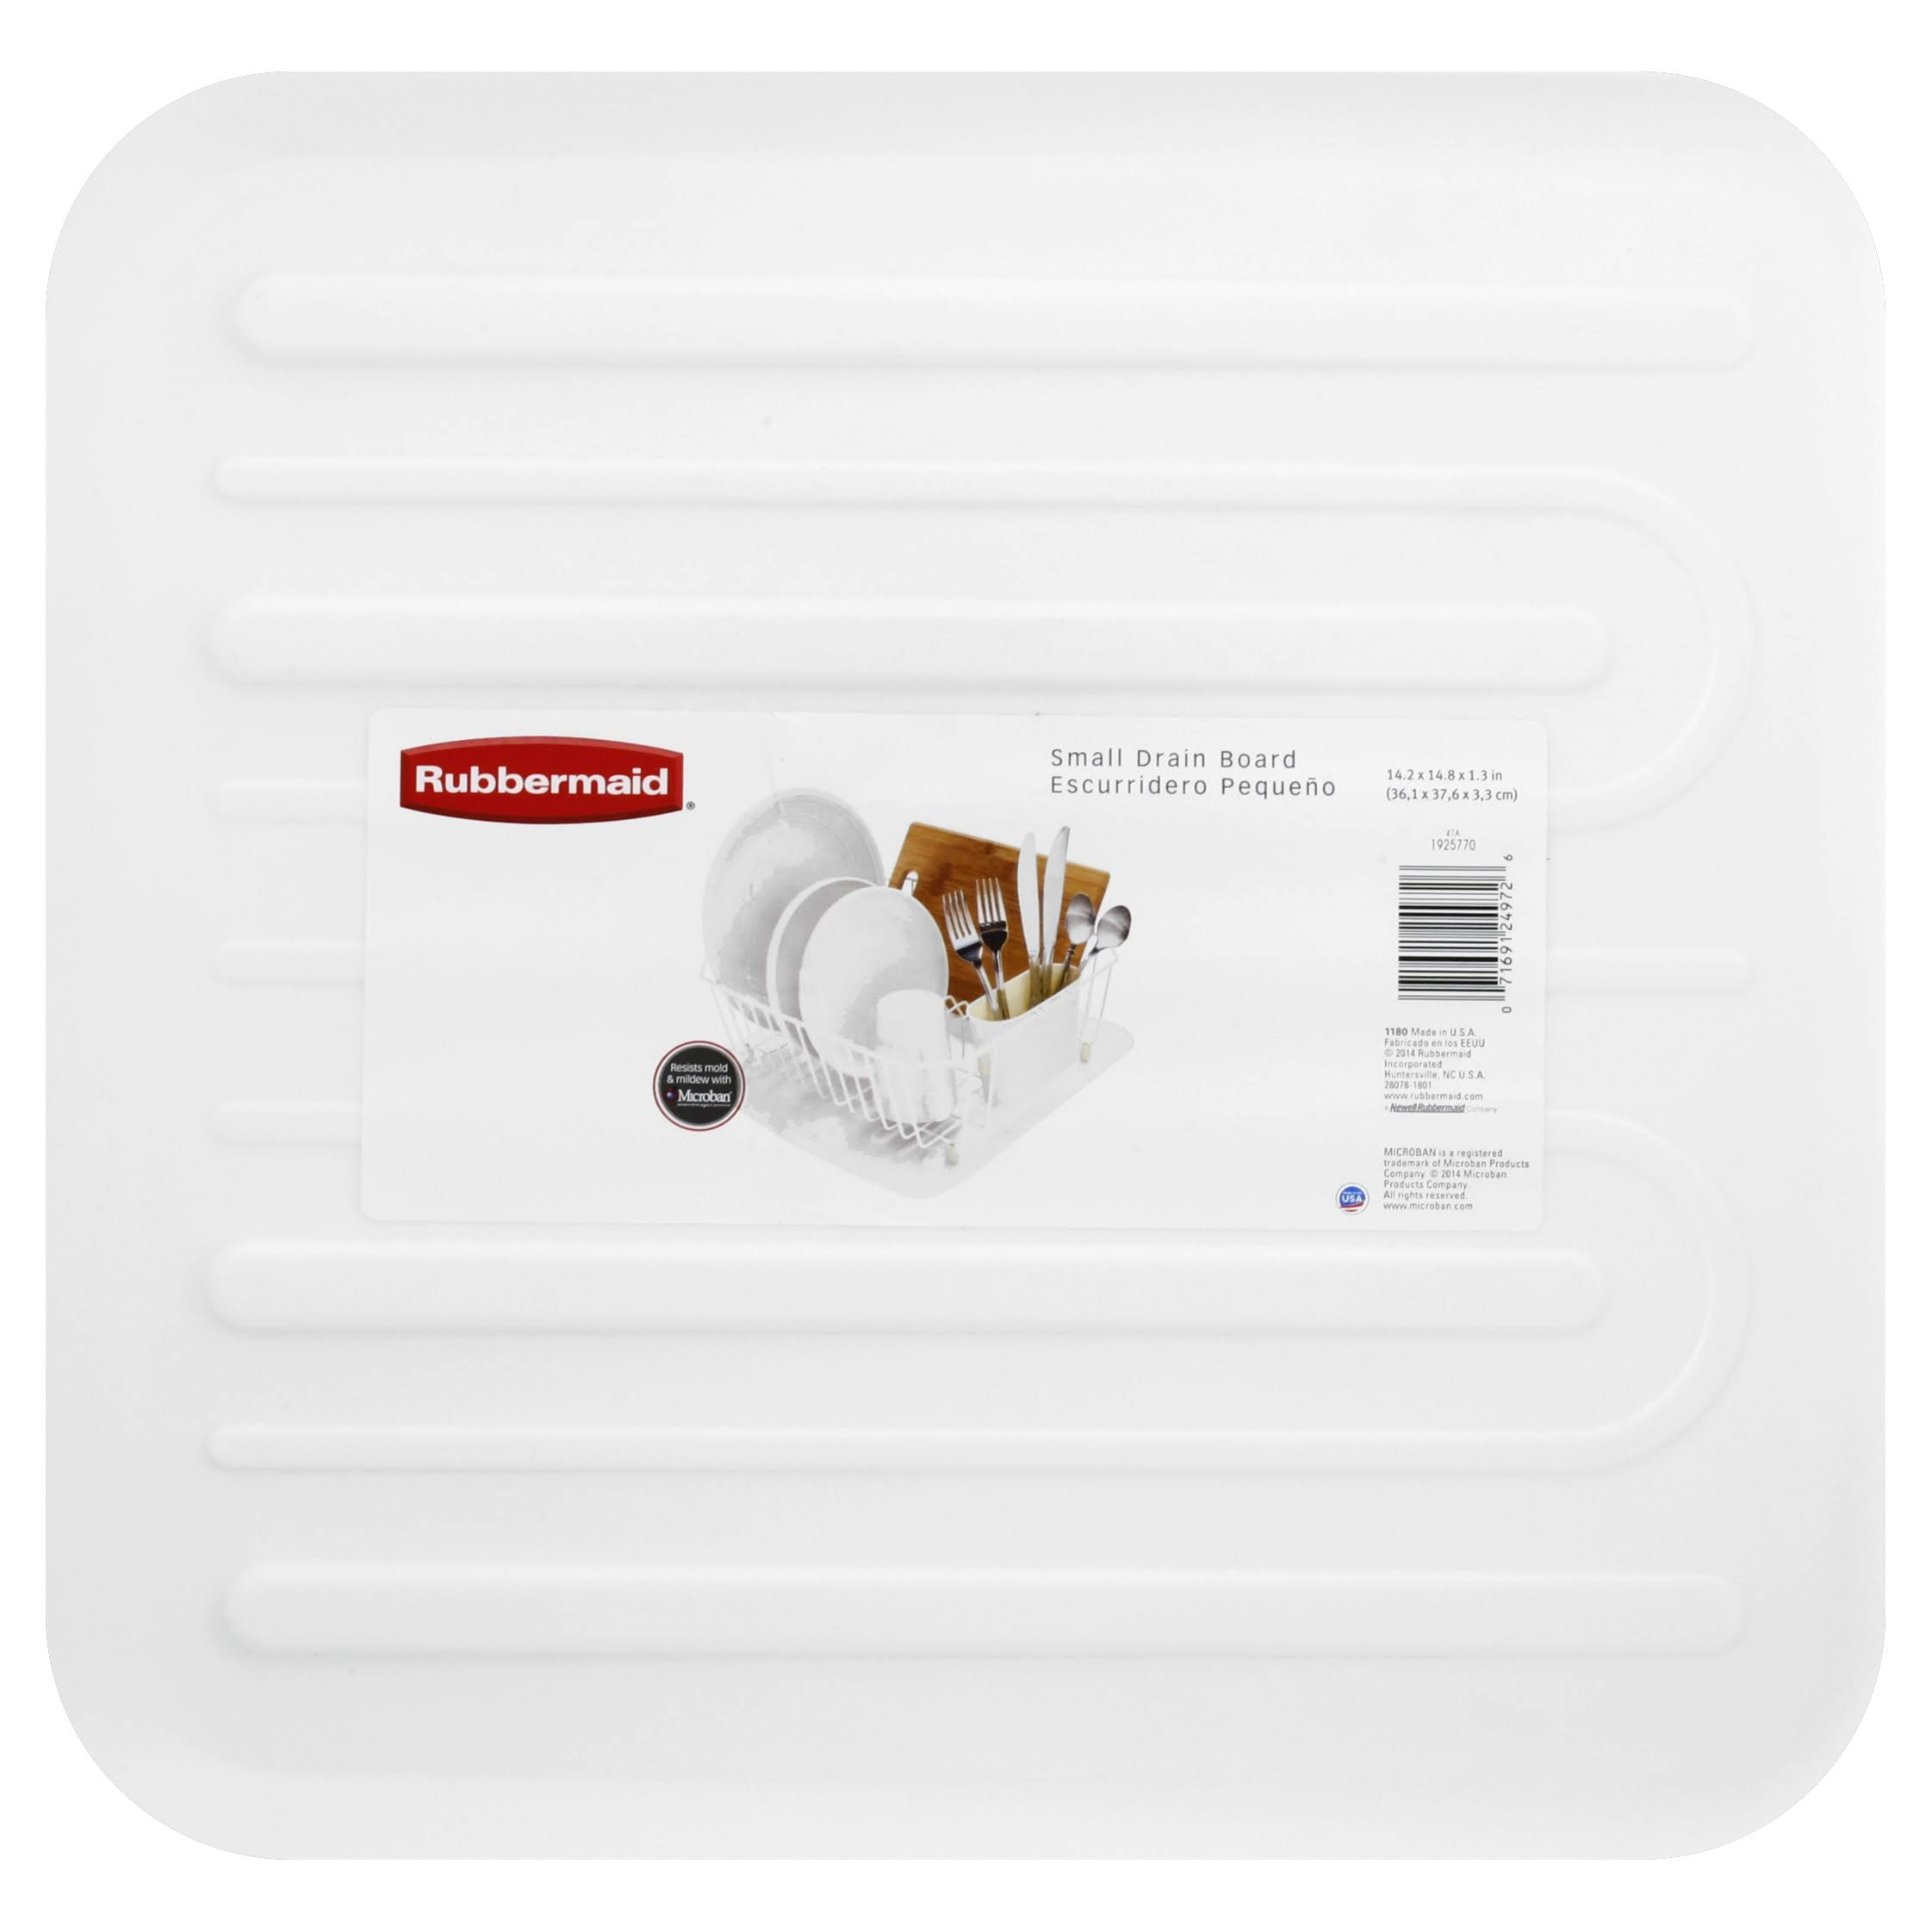 Rubbermaid Drain Board - Small, White